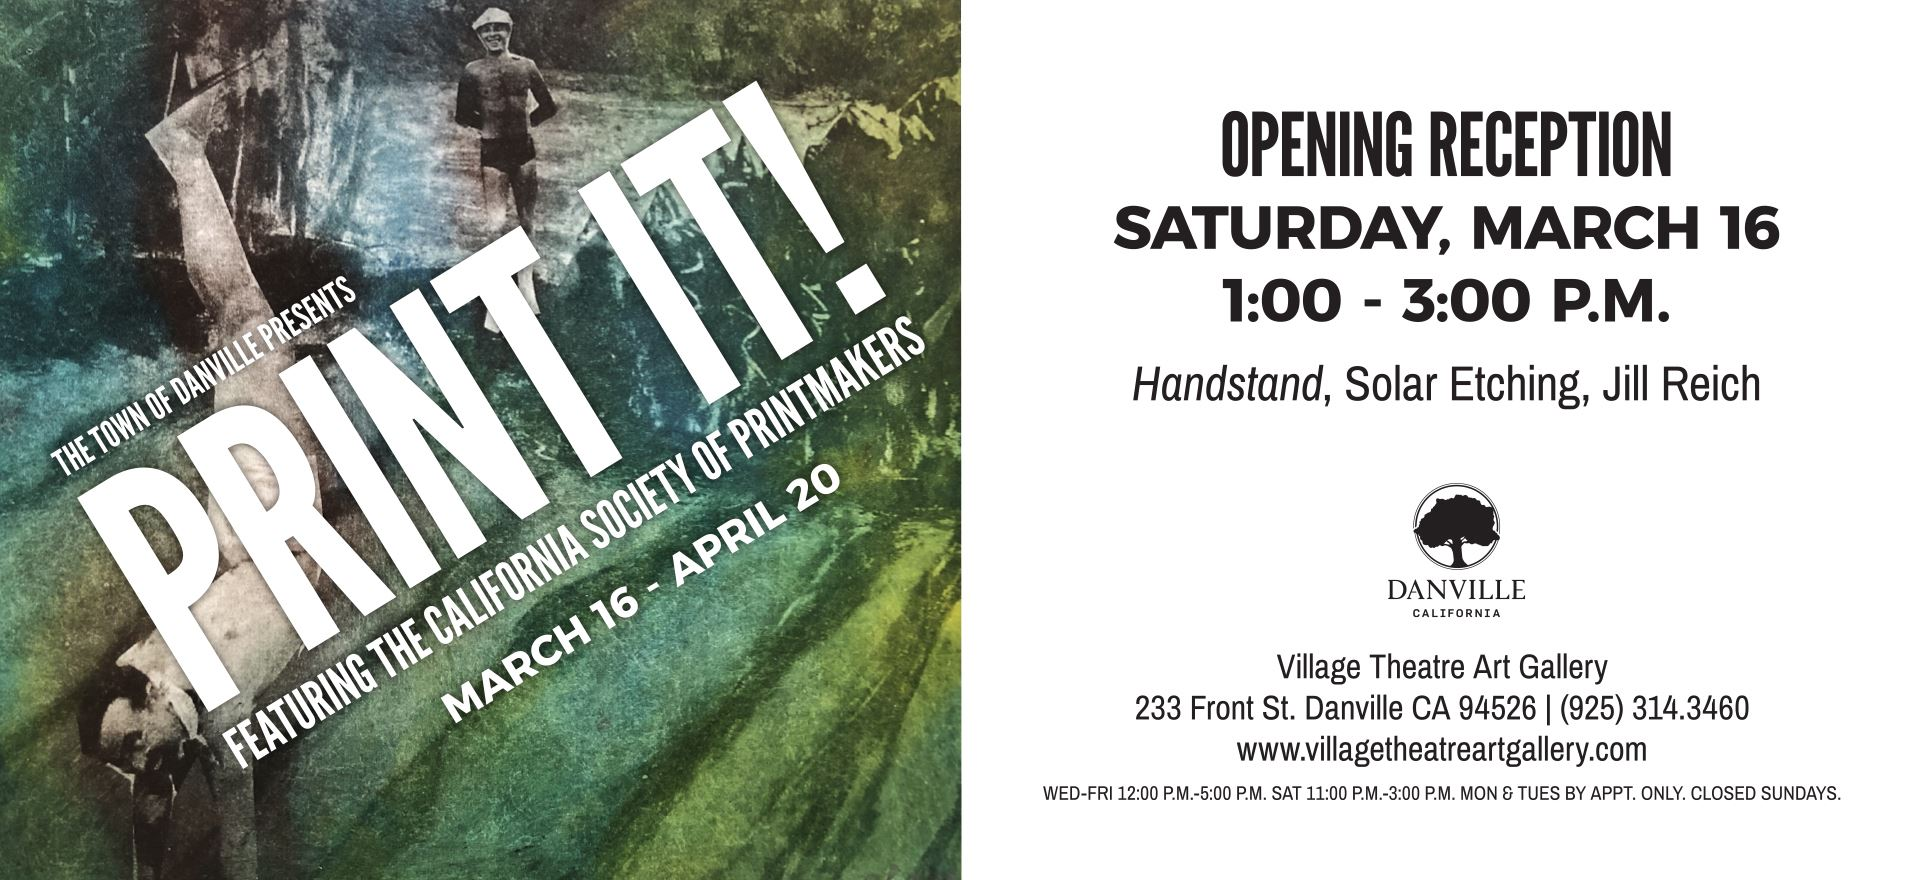 The Town of Danville Presents Print It Featuring the California Society of PrintMakers March 16 - Ap